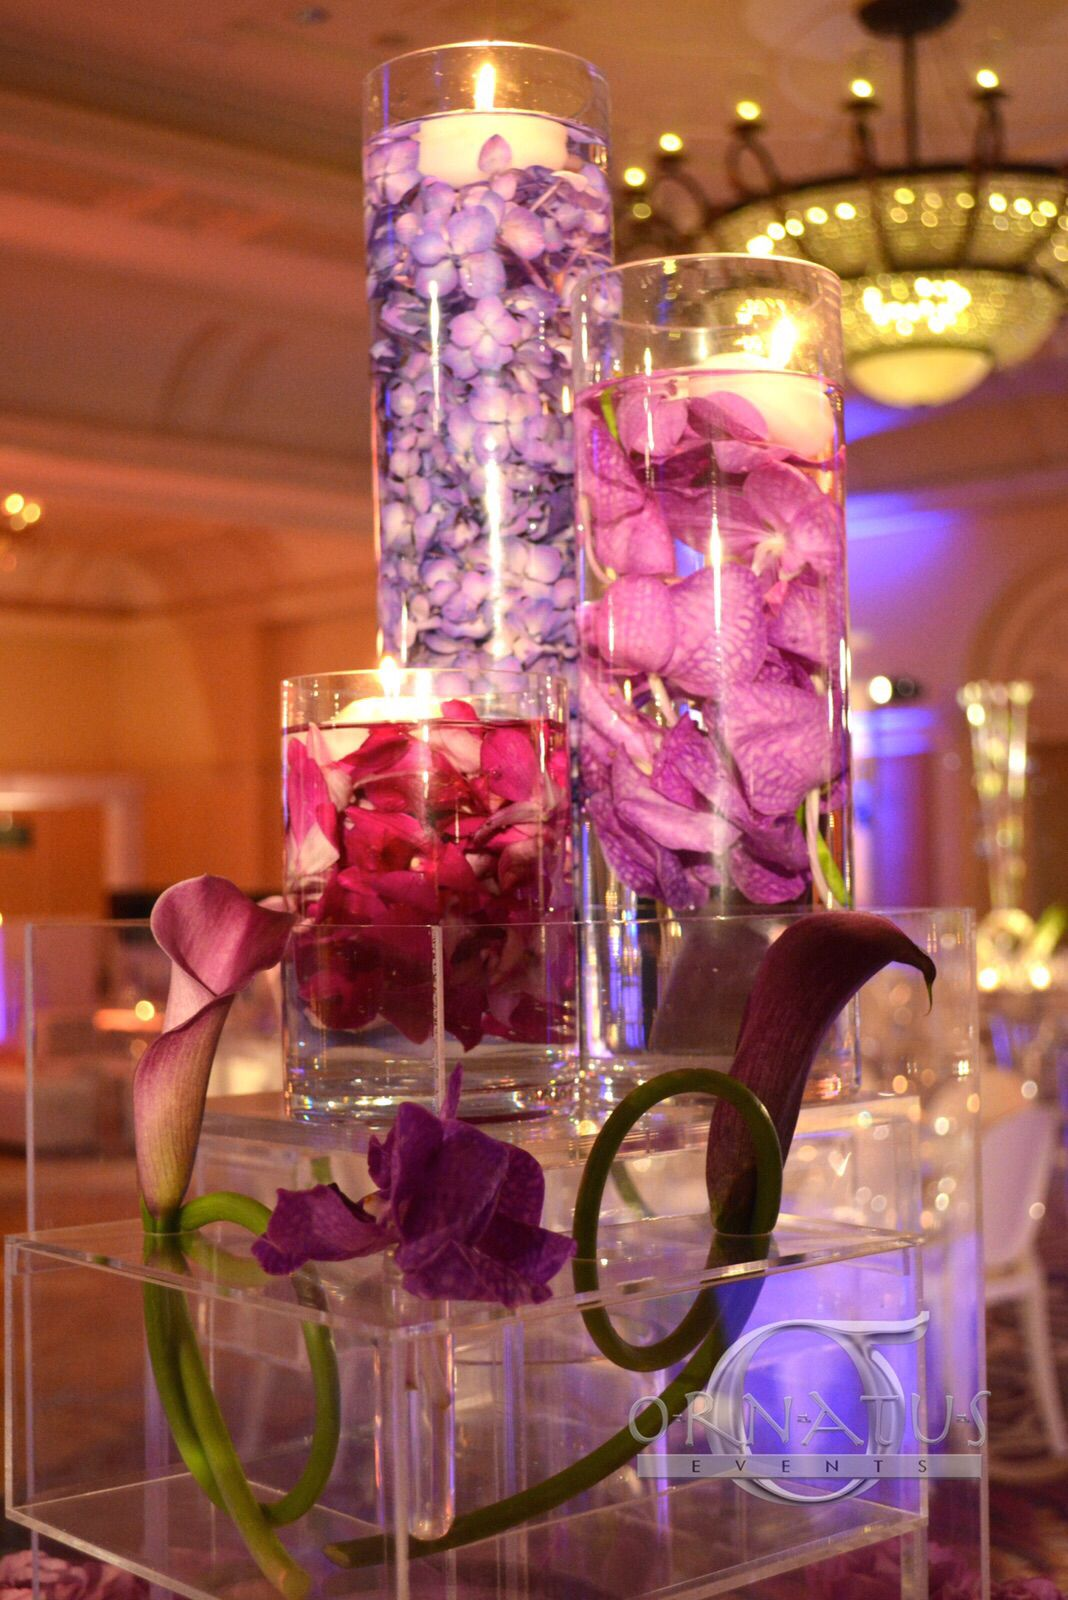 Modern wedding decor images  ORNATUS EVENTS PRODUCTIONS ornatusevents Passion for Decor